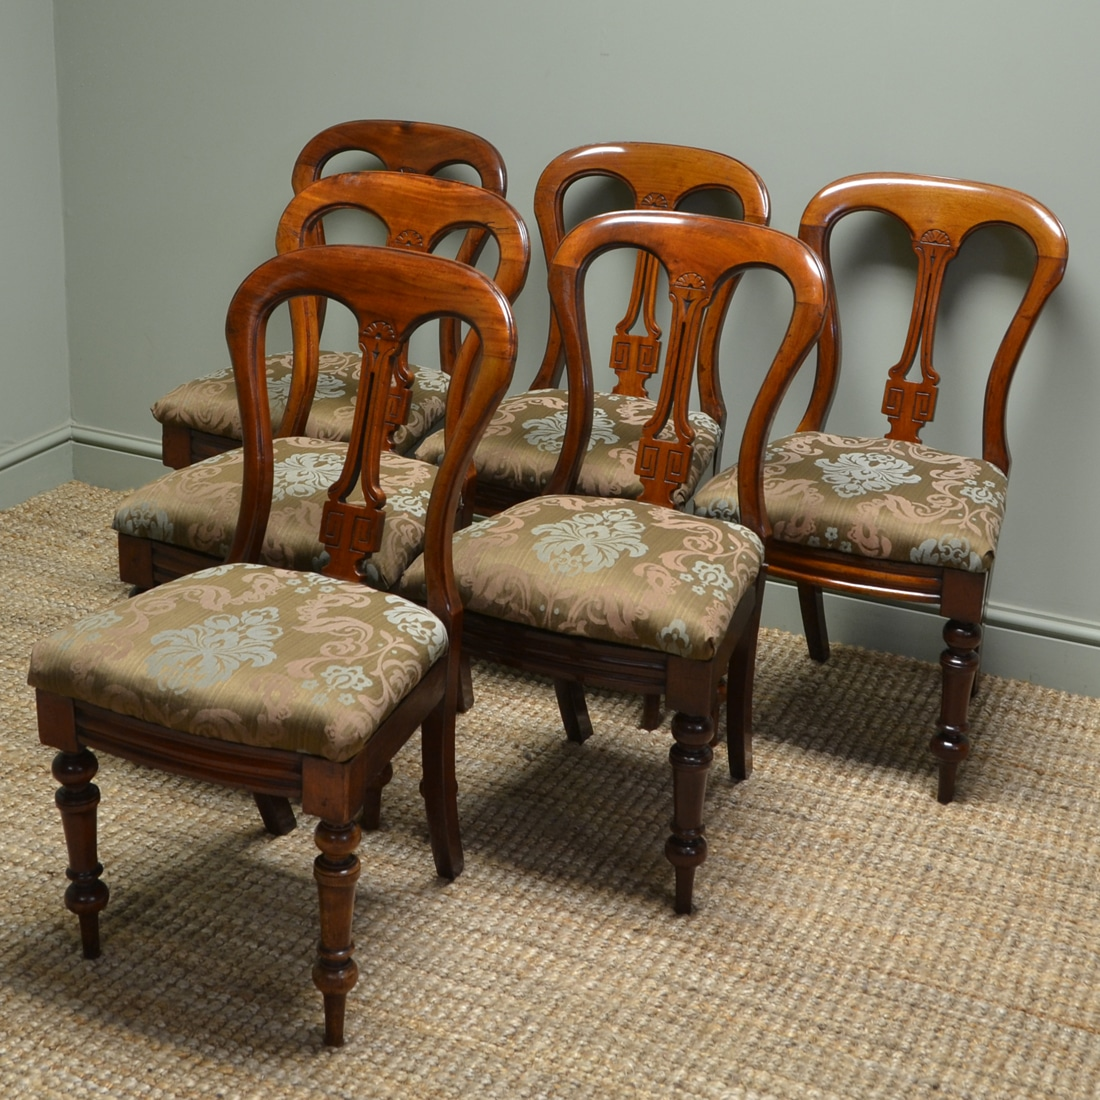 Vintage Chairs Set Of Six Victorian Mahogany Antique Dining Chairs